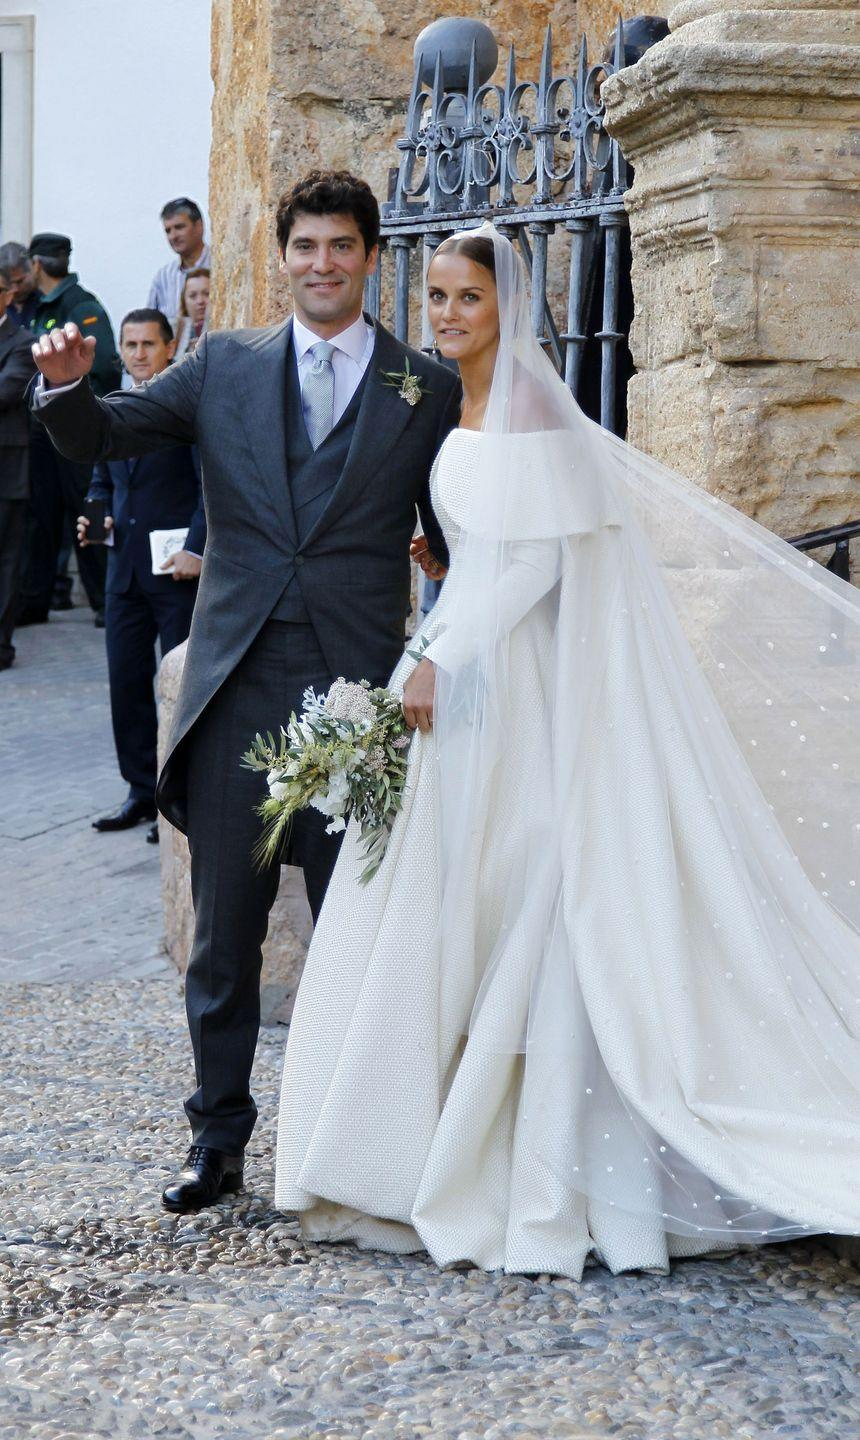 <p>For her wedding to Alejandro Santo Domingo, Lady Charlotte Wellesley, the daughter of Princess Antonia the Duchess of Wellington, chose a structured off-the-shoulder gown by Emilia Wickstead. The Lady paired her layered dress with a sheer veil, which was embroidered with polka dots. </p>